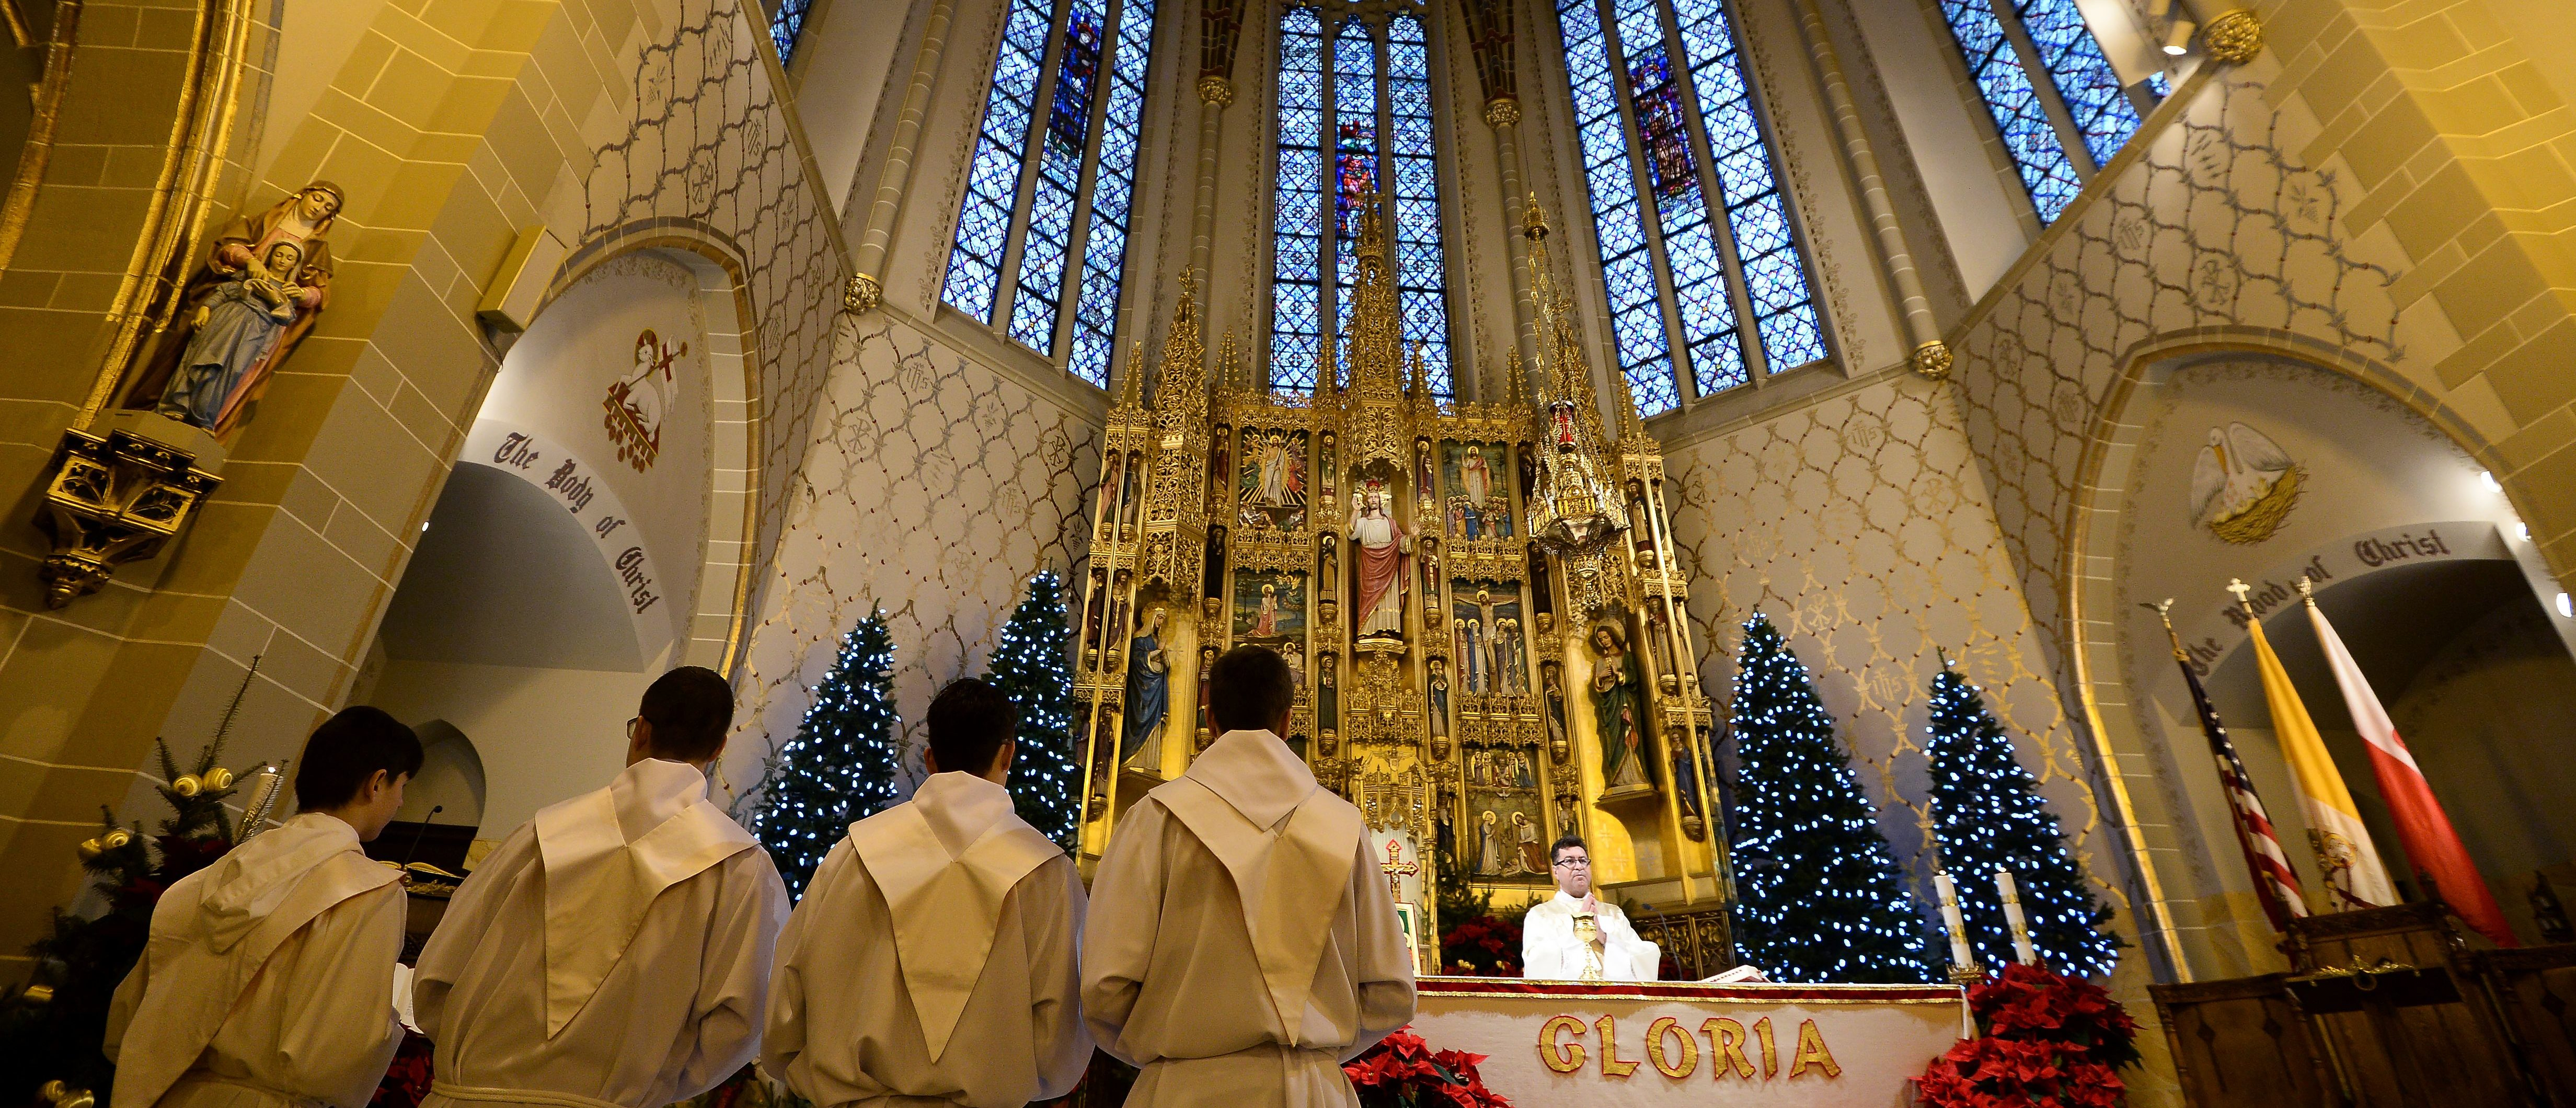 Priests celebrate mass at a Catholic church in the Archdiocese of Detroit, January 10, 2016. Detroit priest Eduard Perrone has been removed from ministry after investigation by the Associated Press exposed a credible sexual abuse allegation against him. (Photo: JEWEL SAMAD/AFP/Getty Images)